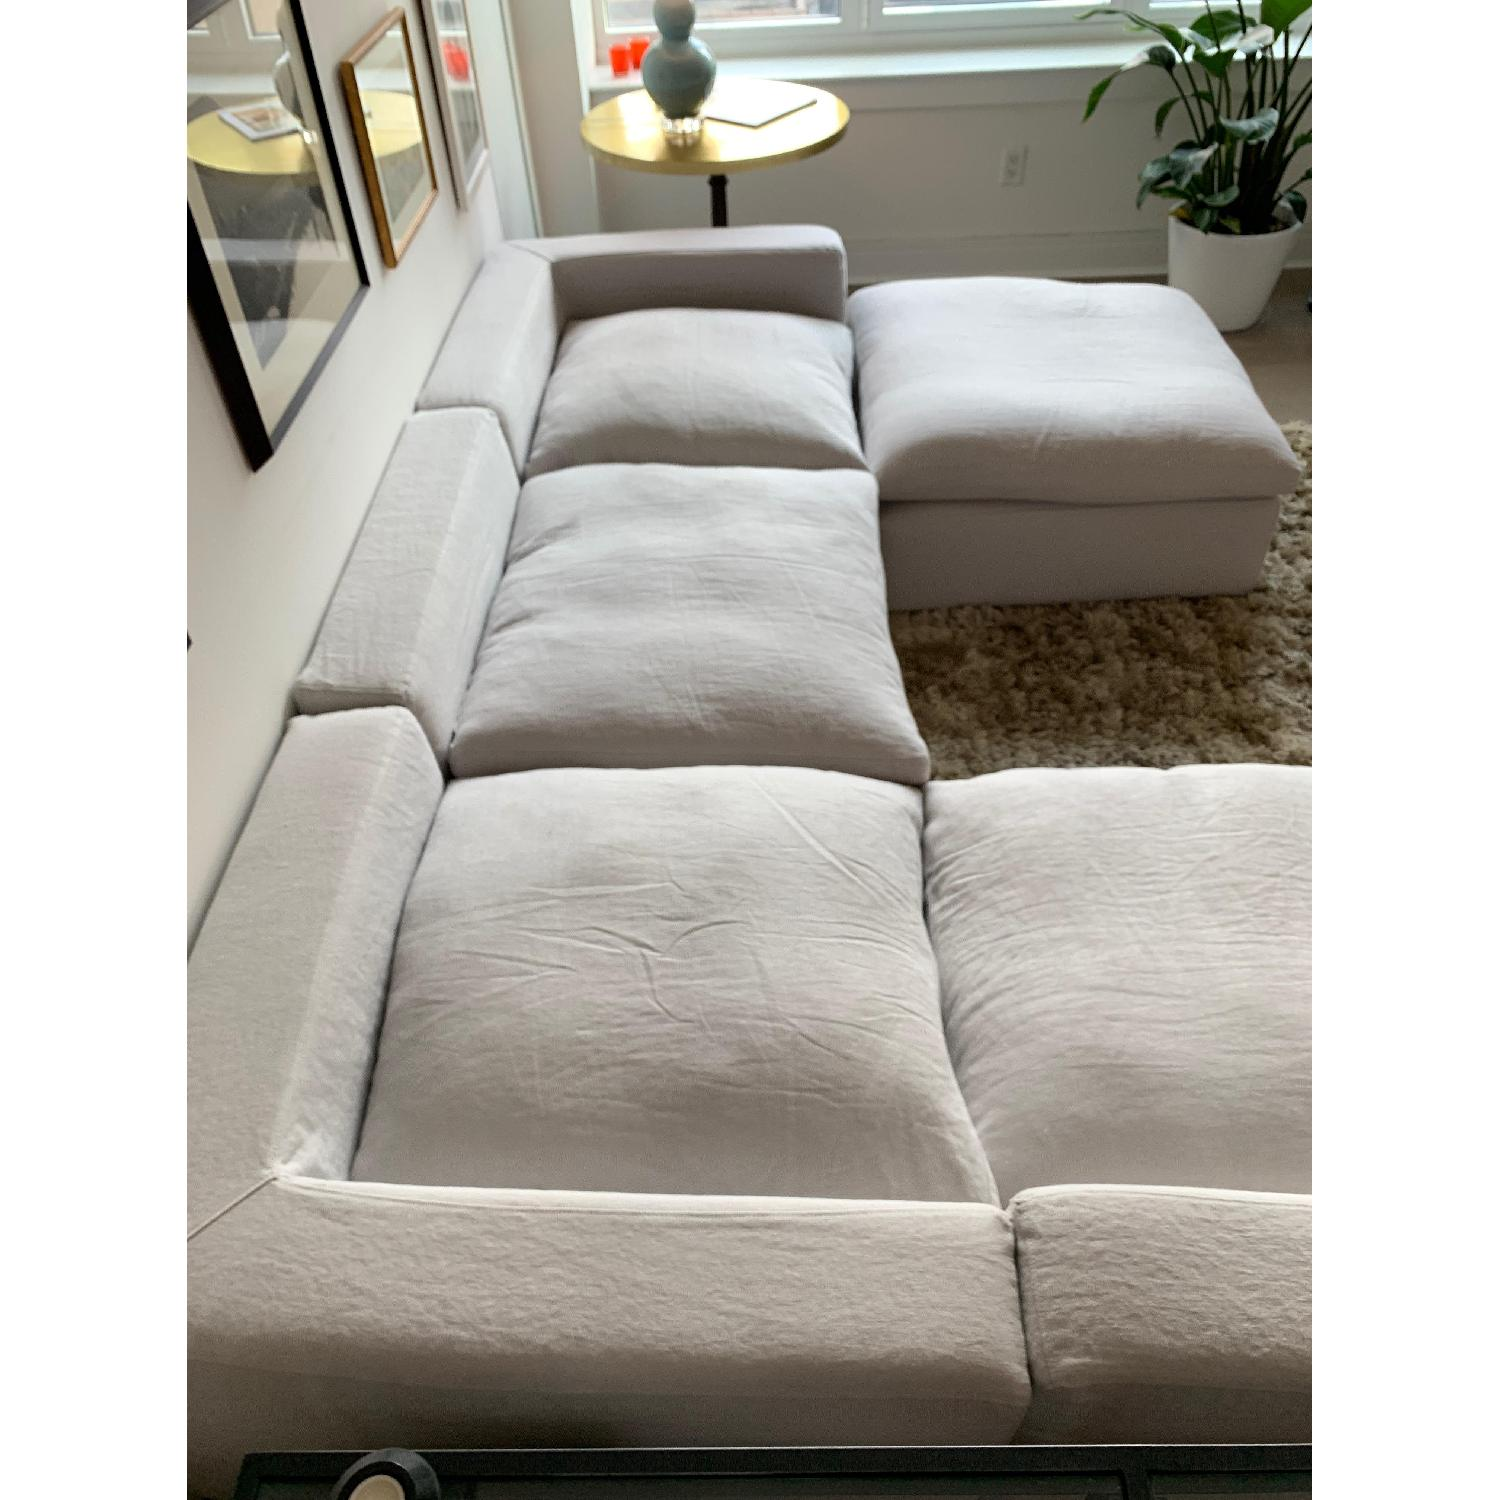 Stupendous Restoration Hardware Cloud Modular Chaise Sectional Ottoman Caraccident5 Cool Chair Designs And Ideas Caraccident5Info